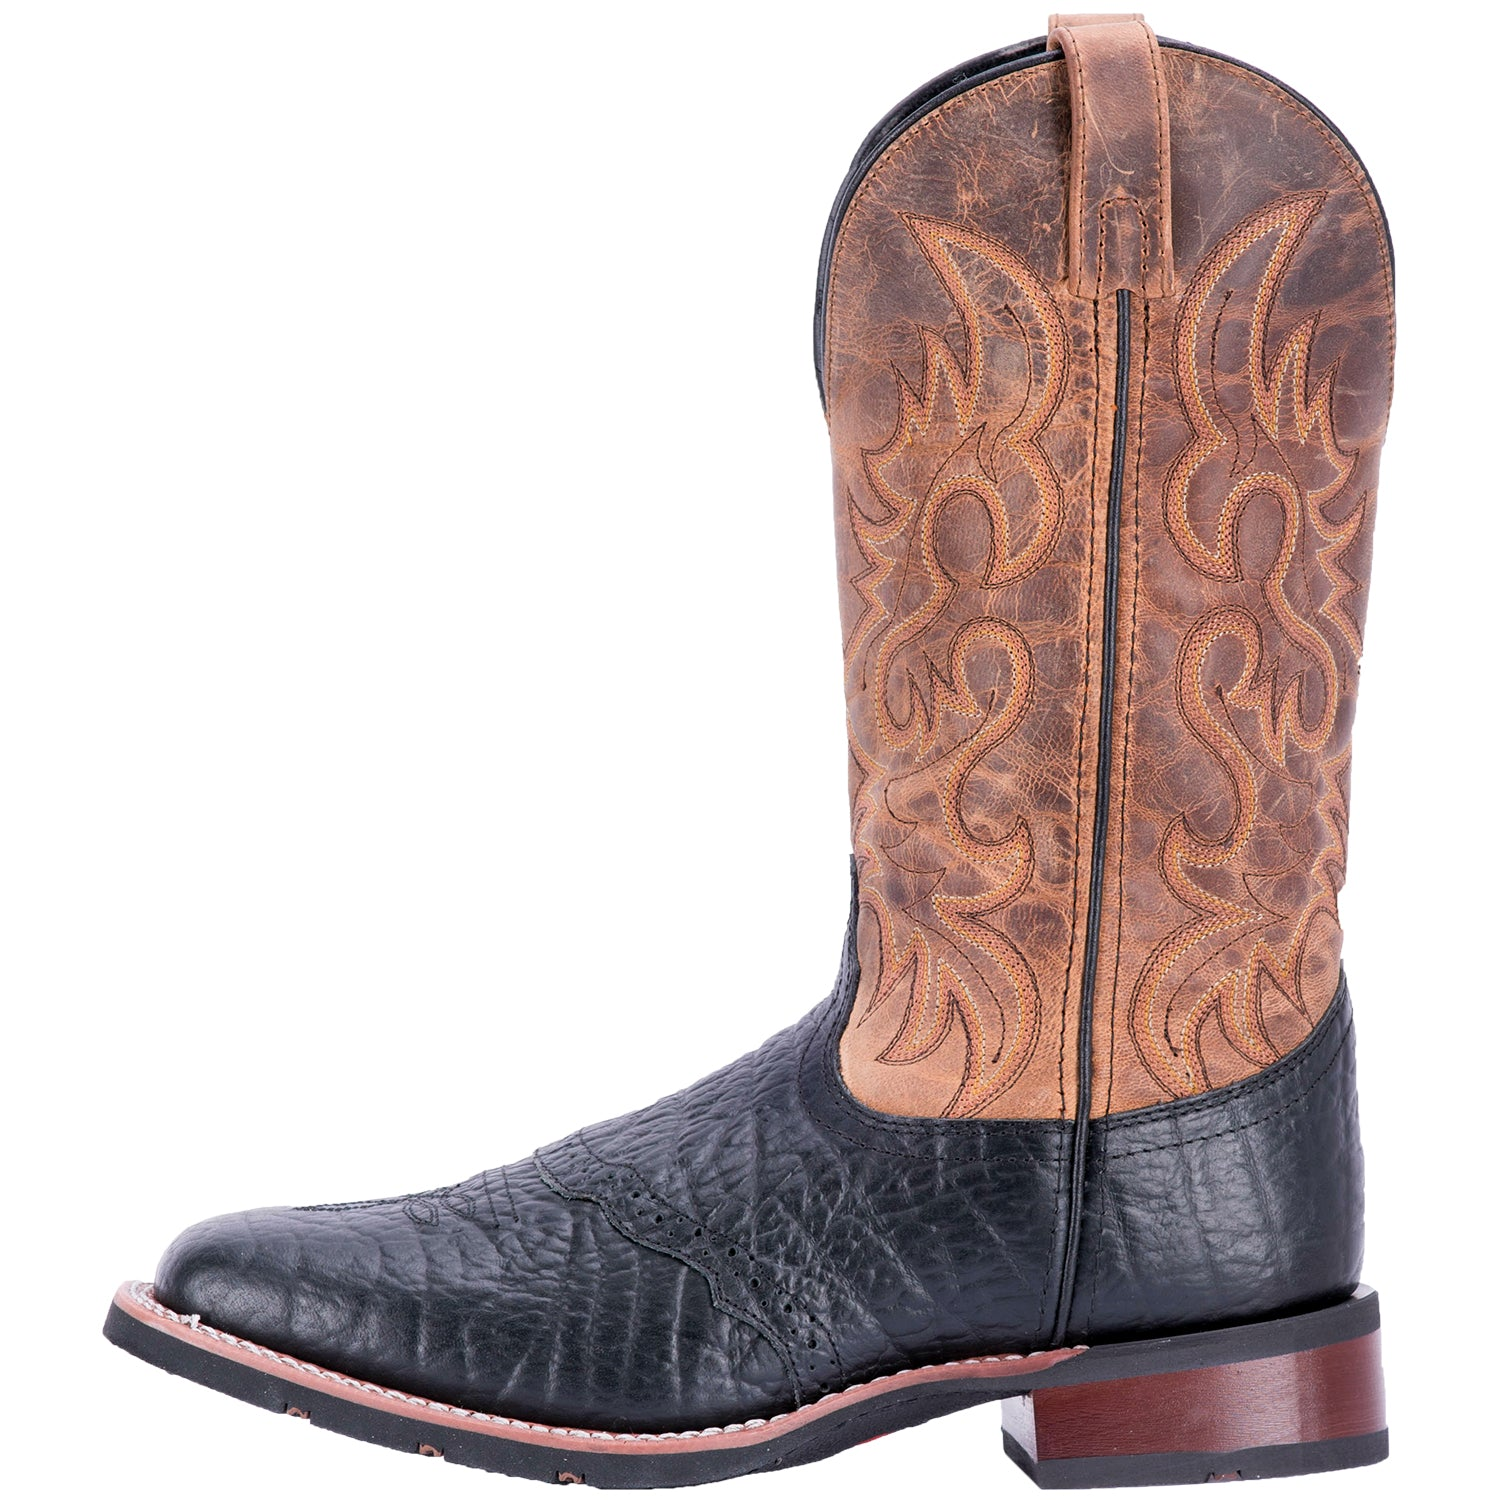 TOPEKA LEATHER BOOT 4197239619626